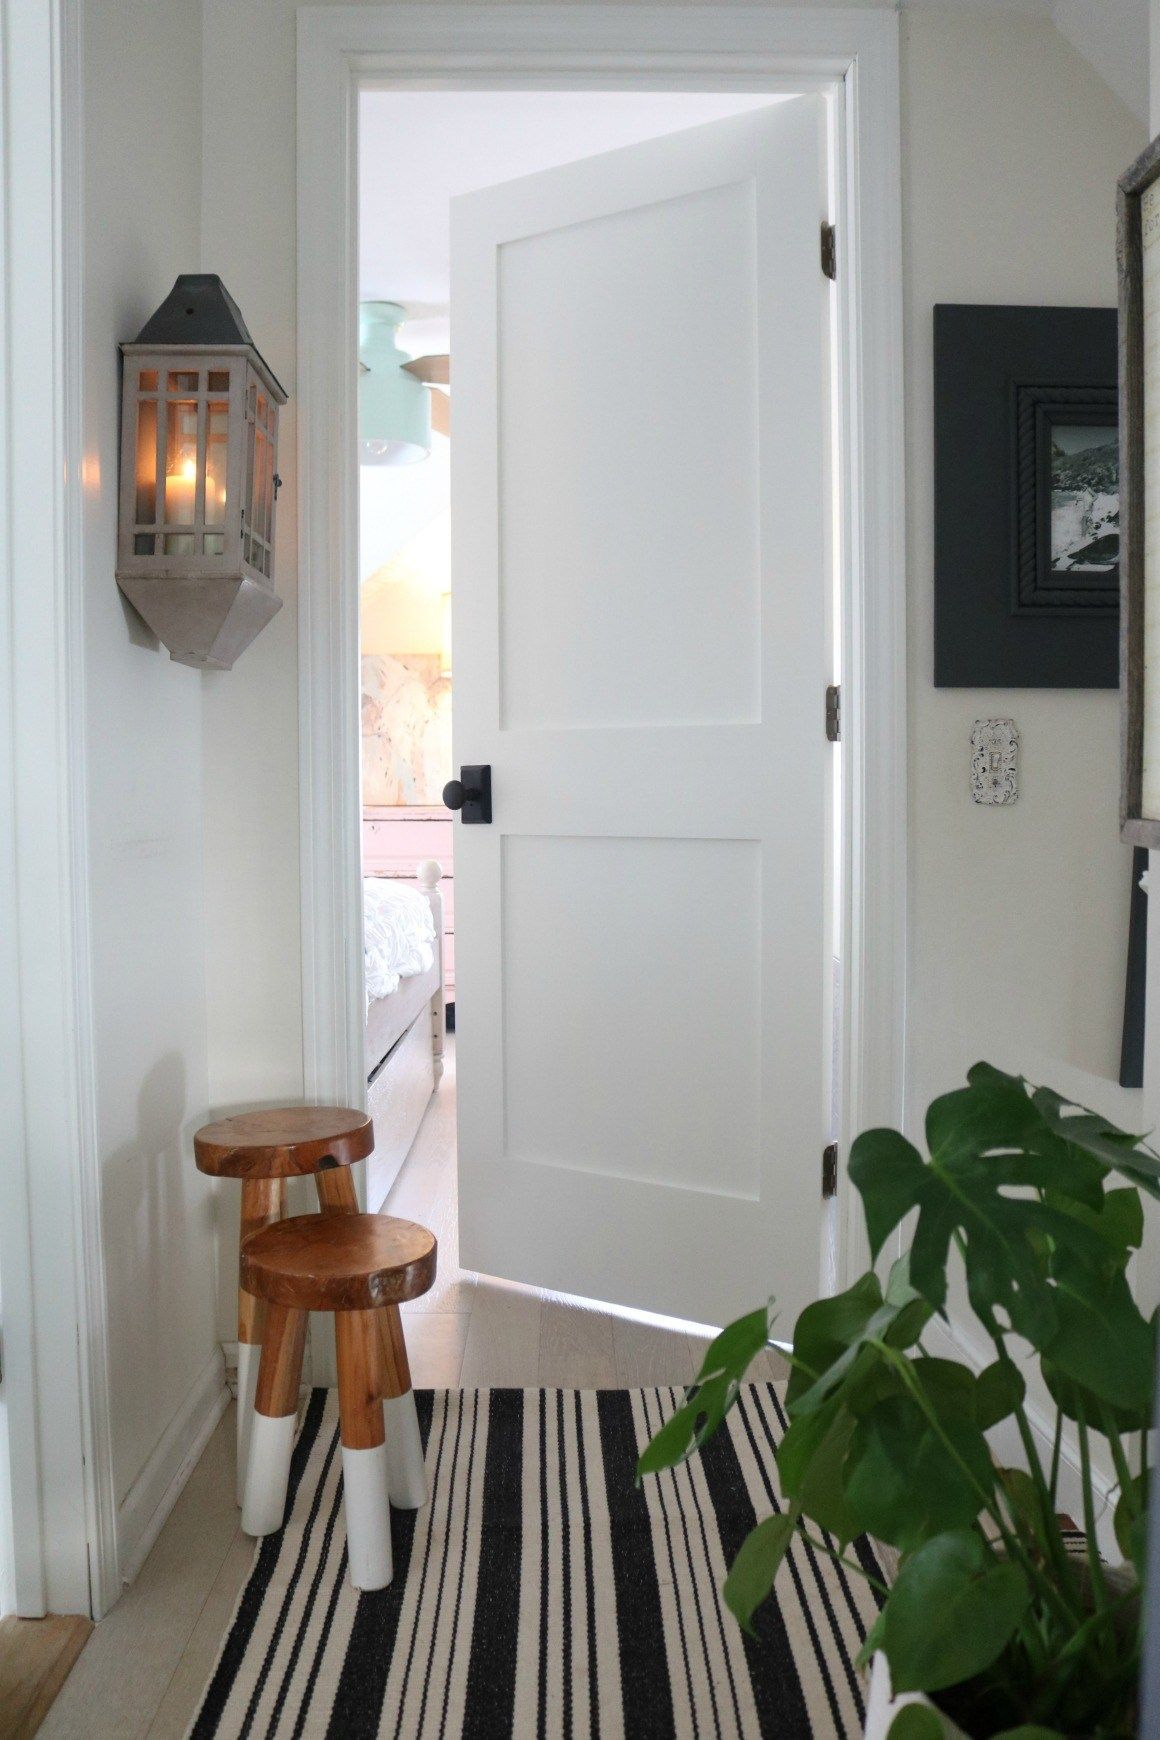 Spring Home Tour with Video Tour of our 1100 Square foot